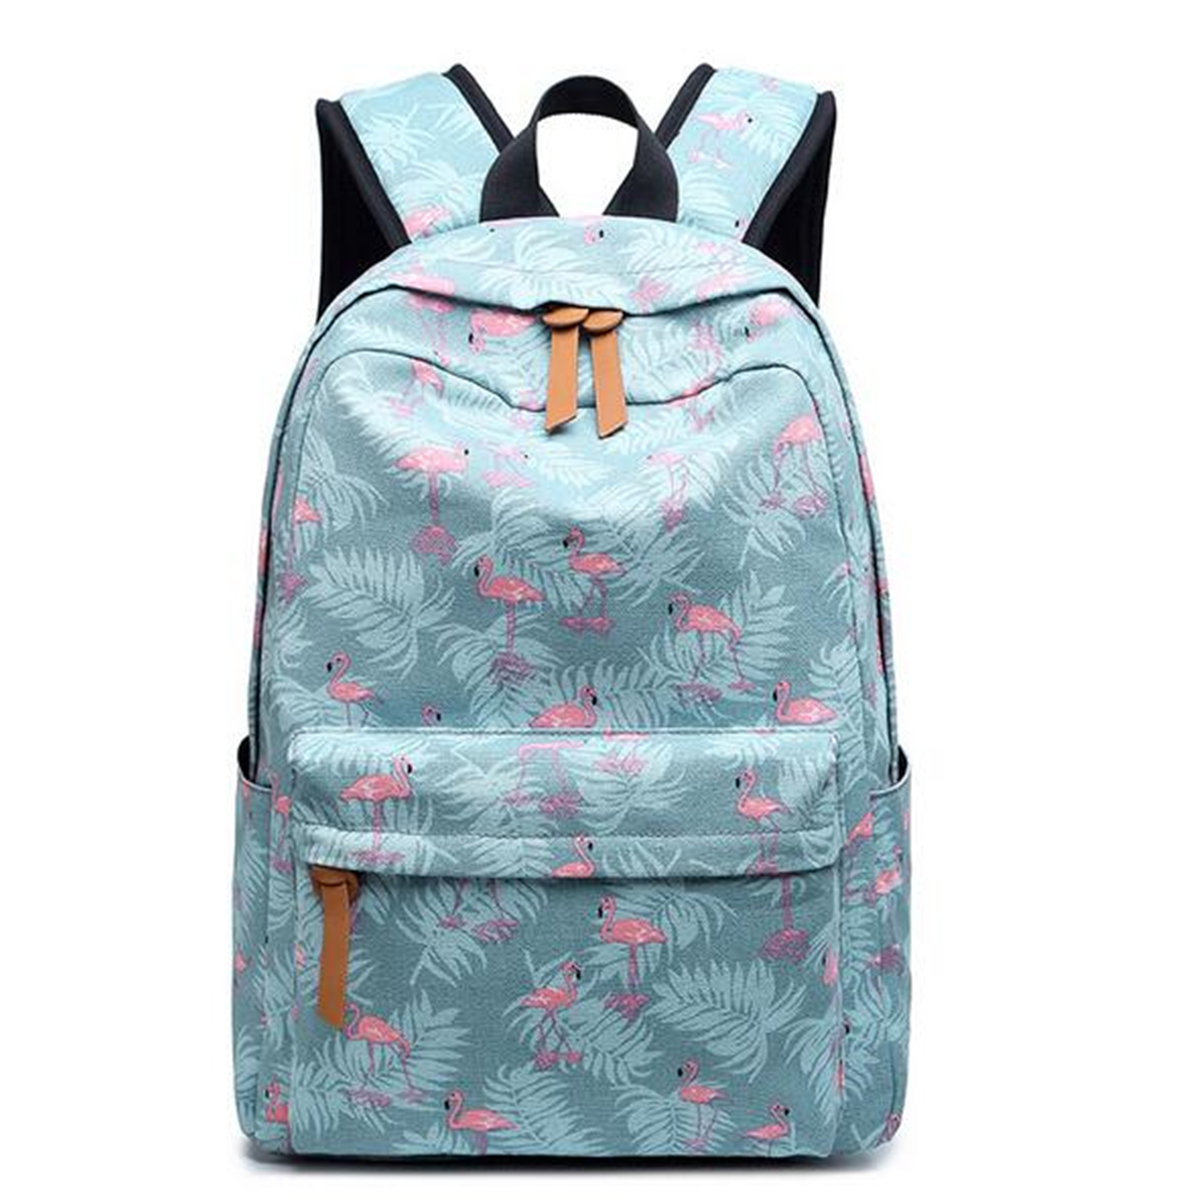 14inch Women Flamingo Canvas Laptop Backpack Ruckpack Girls School Bag Satchel Camping Travel